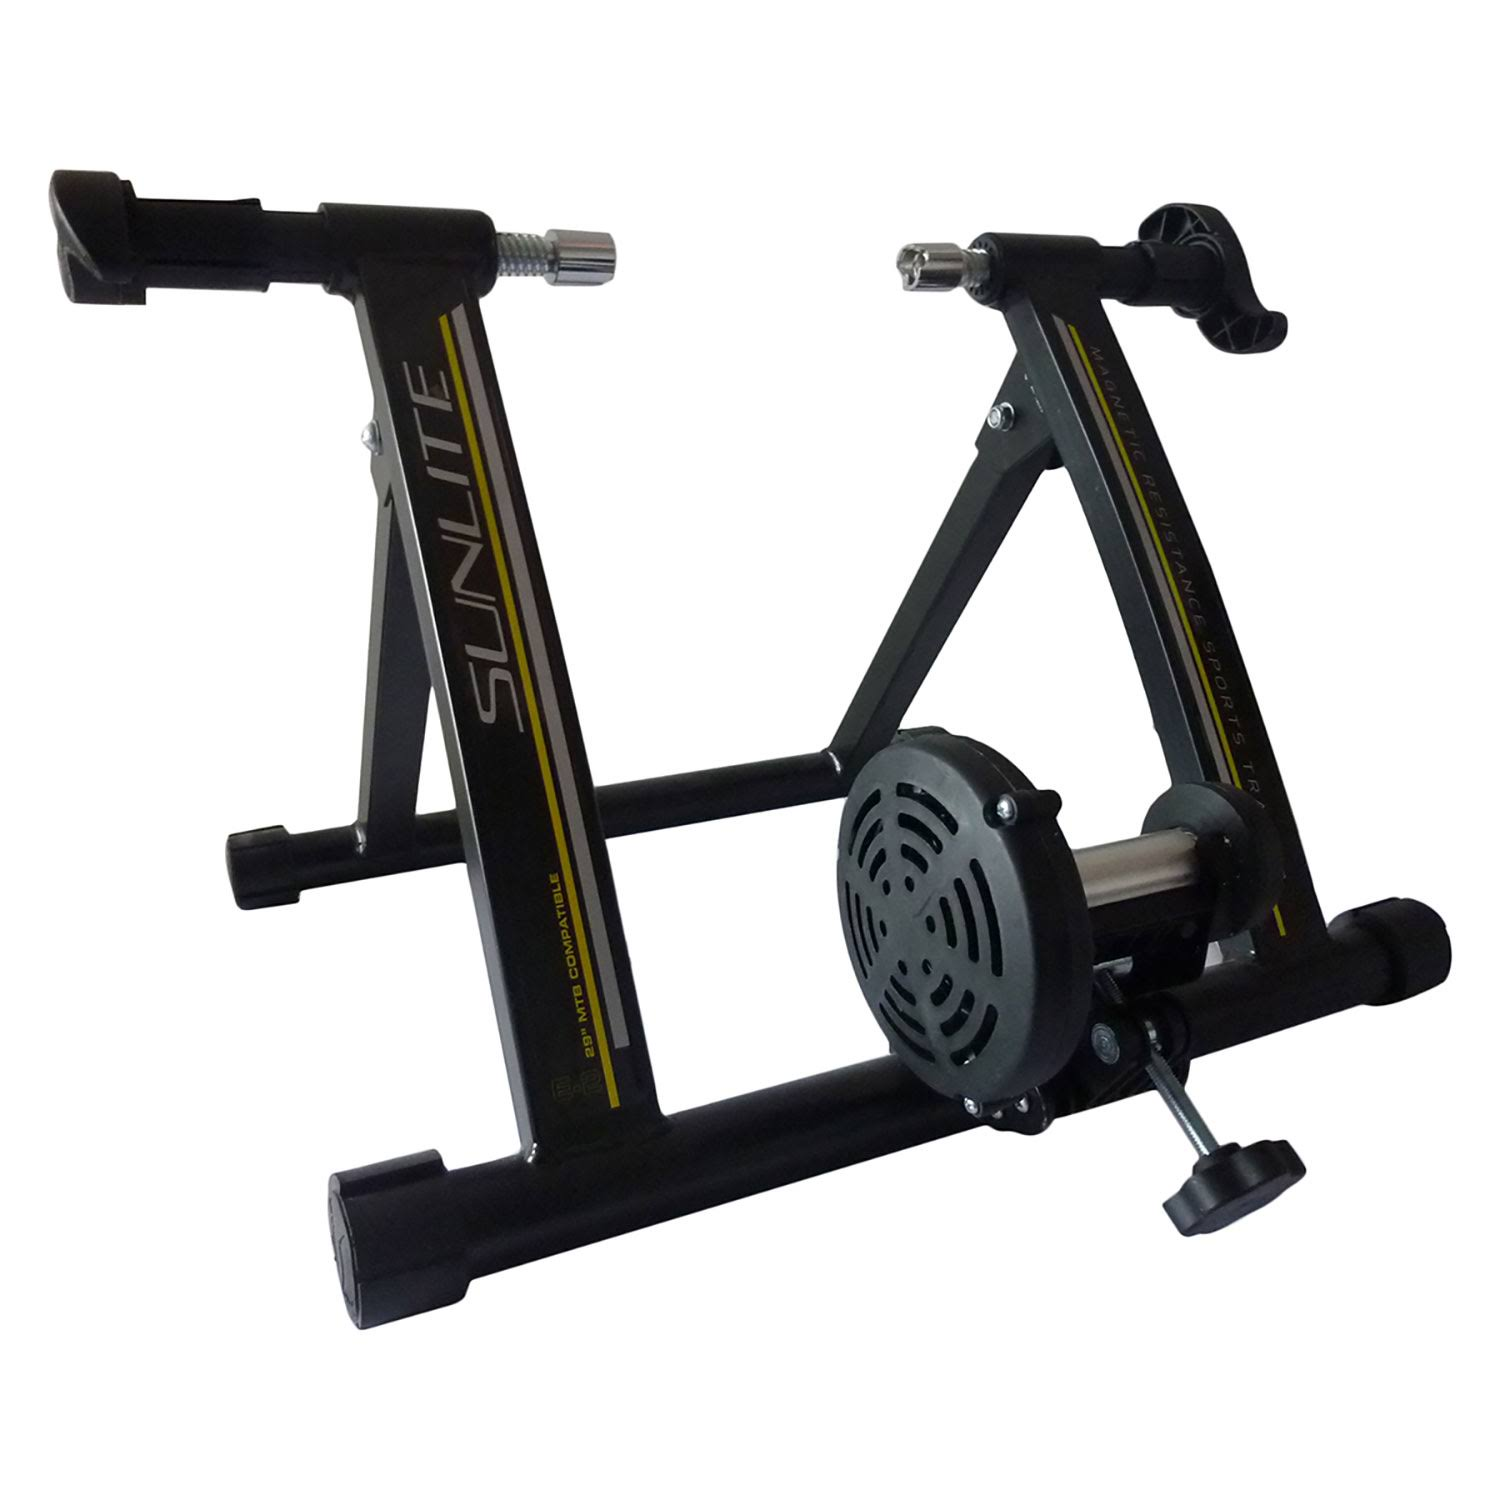 Sunlite E2 Magnetic Bicycle Trainer - Black